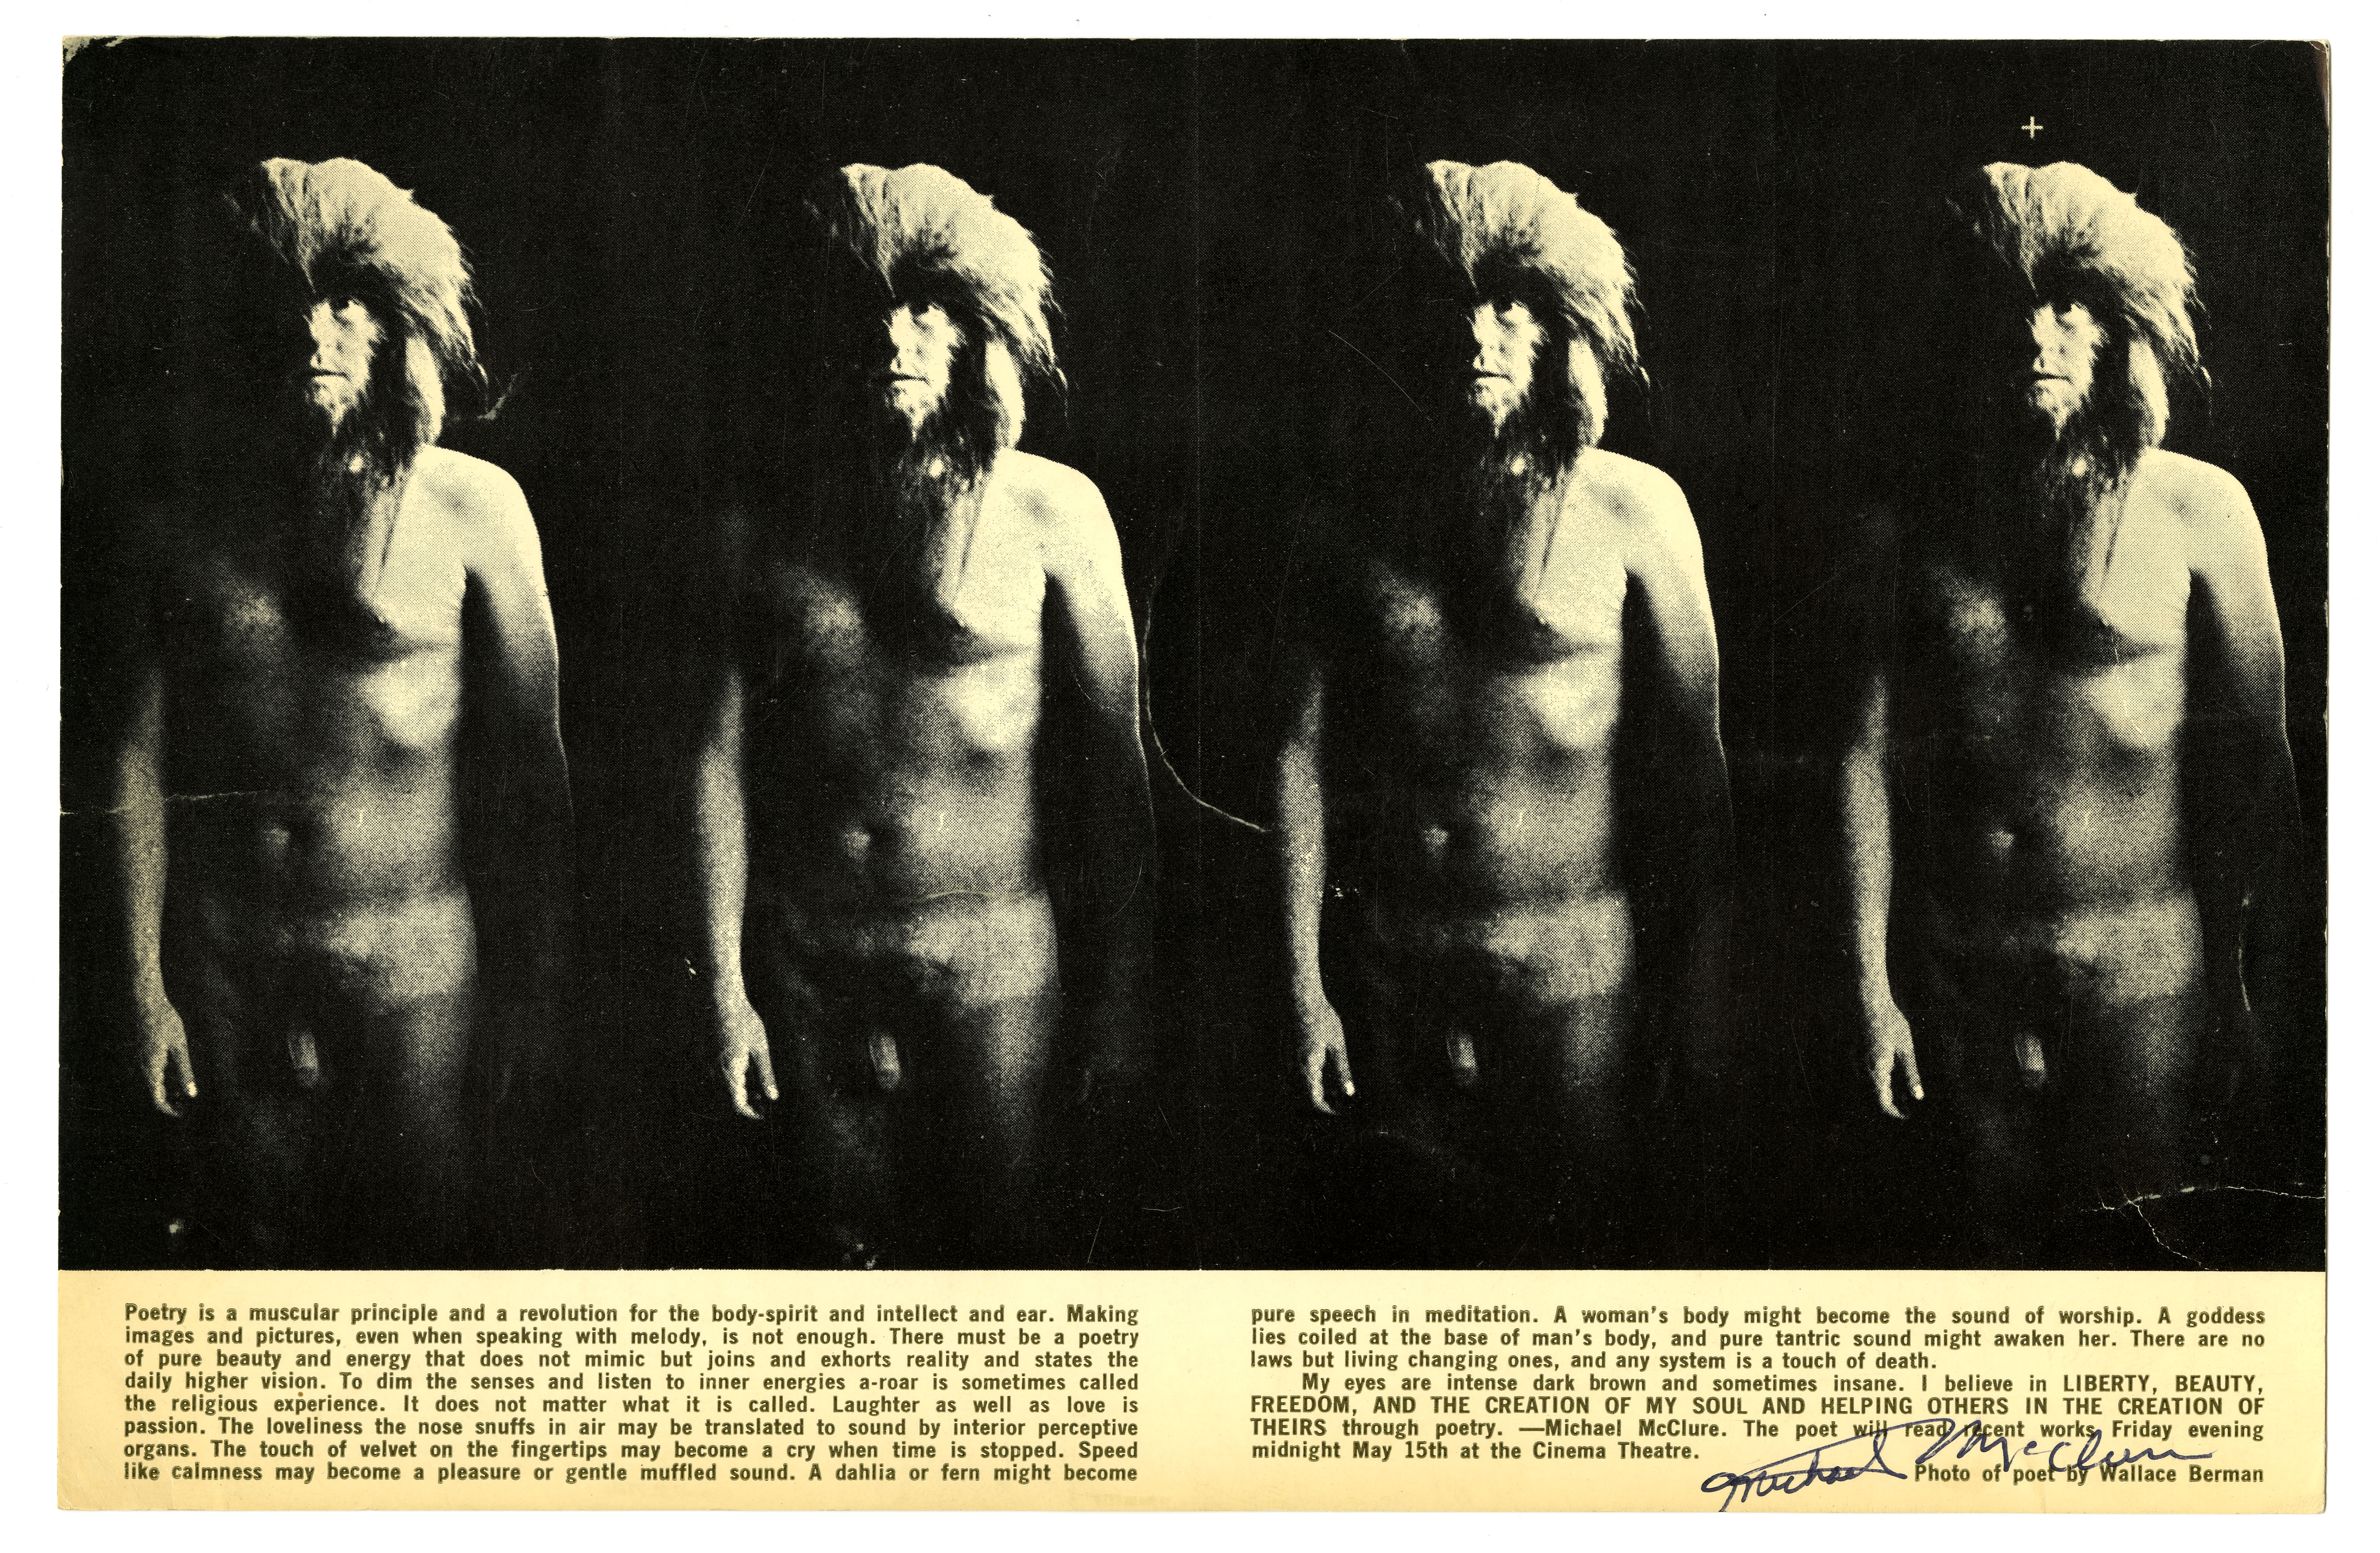 Michael McClure. Poetry Is a Muscular Principle, 1964